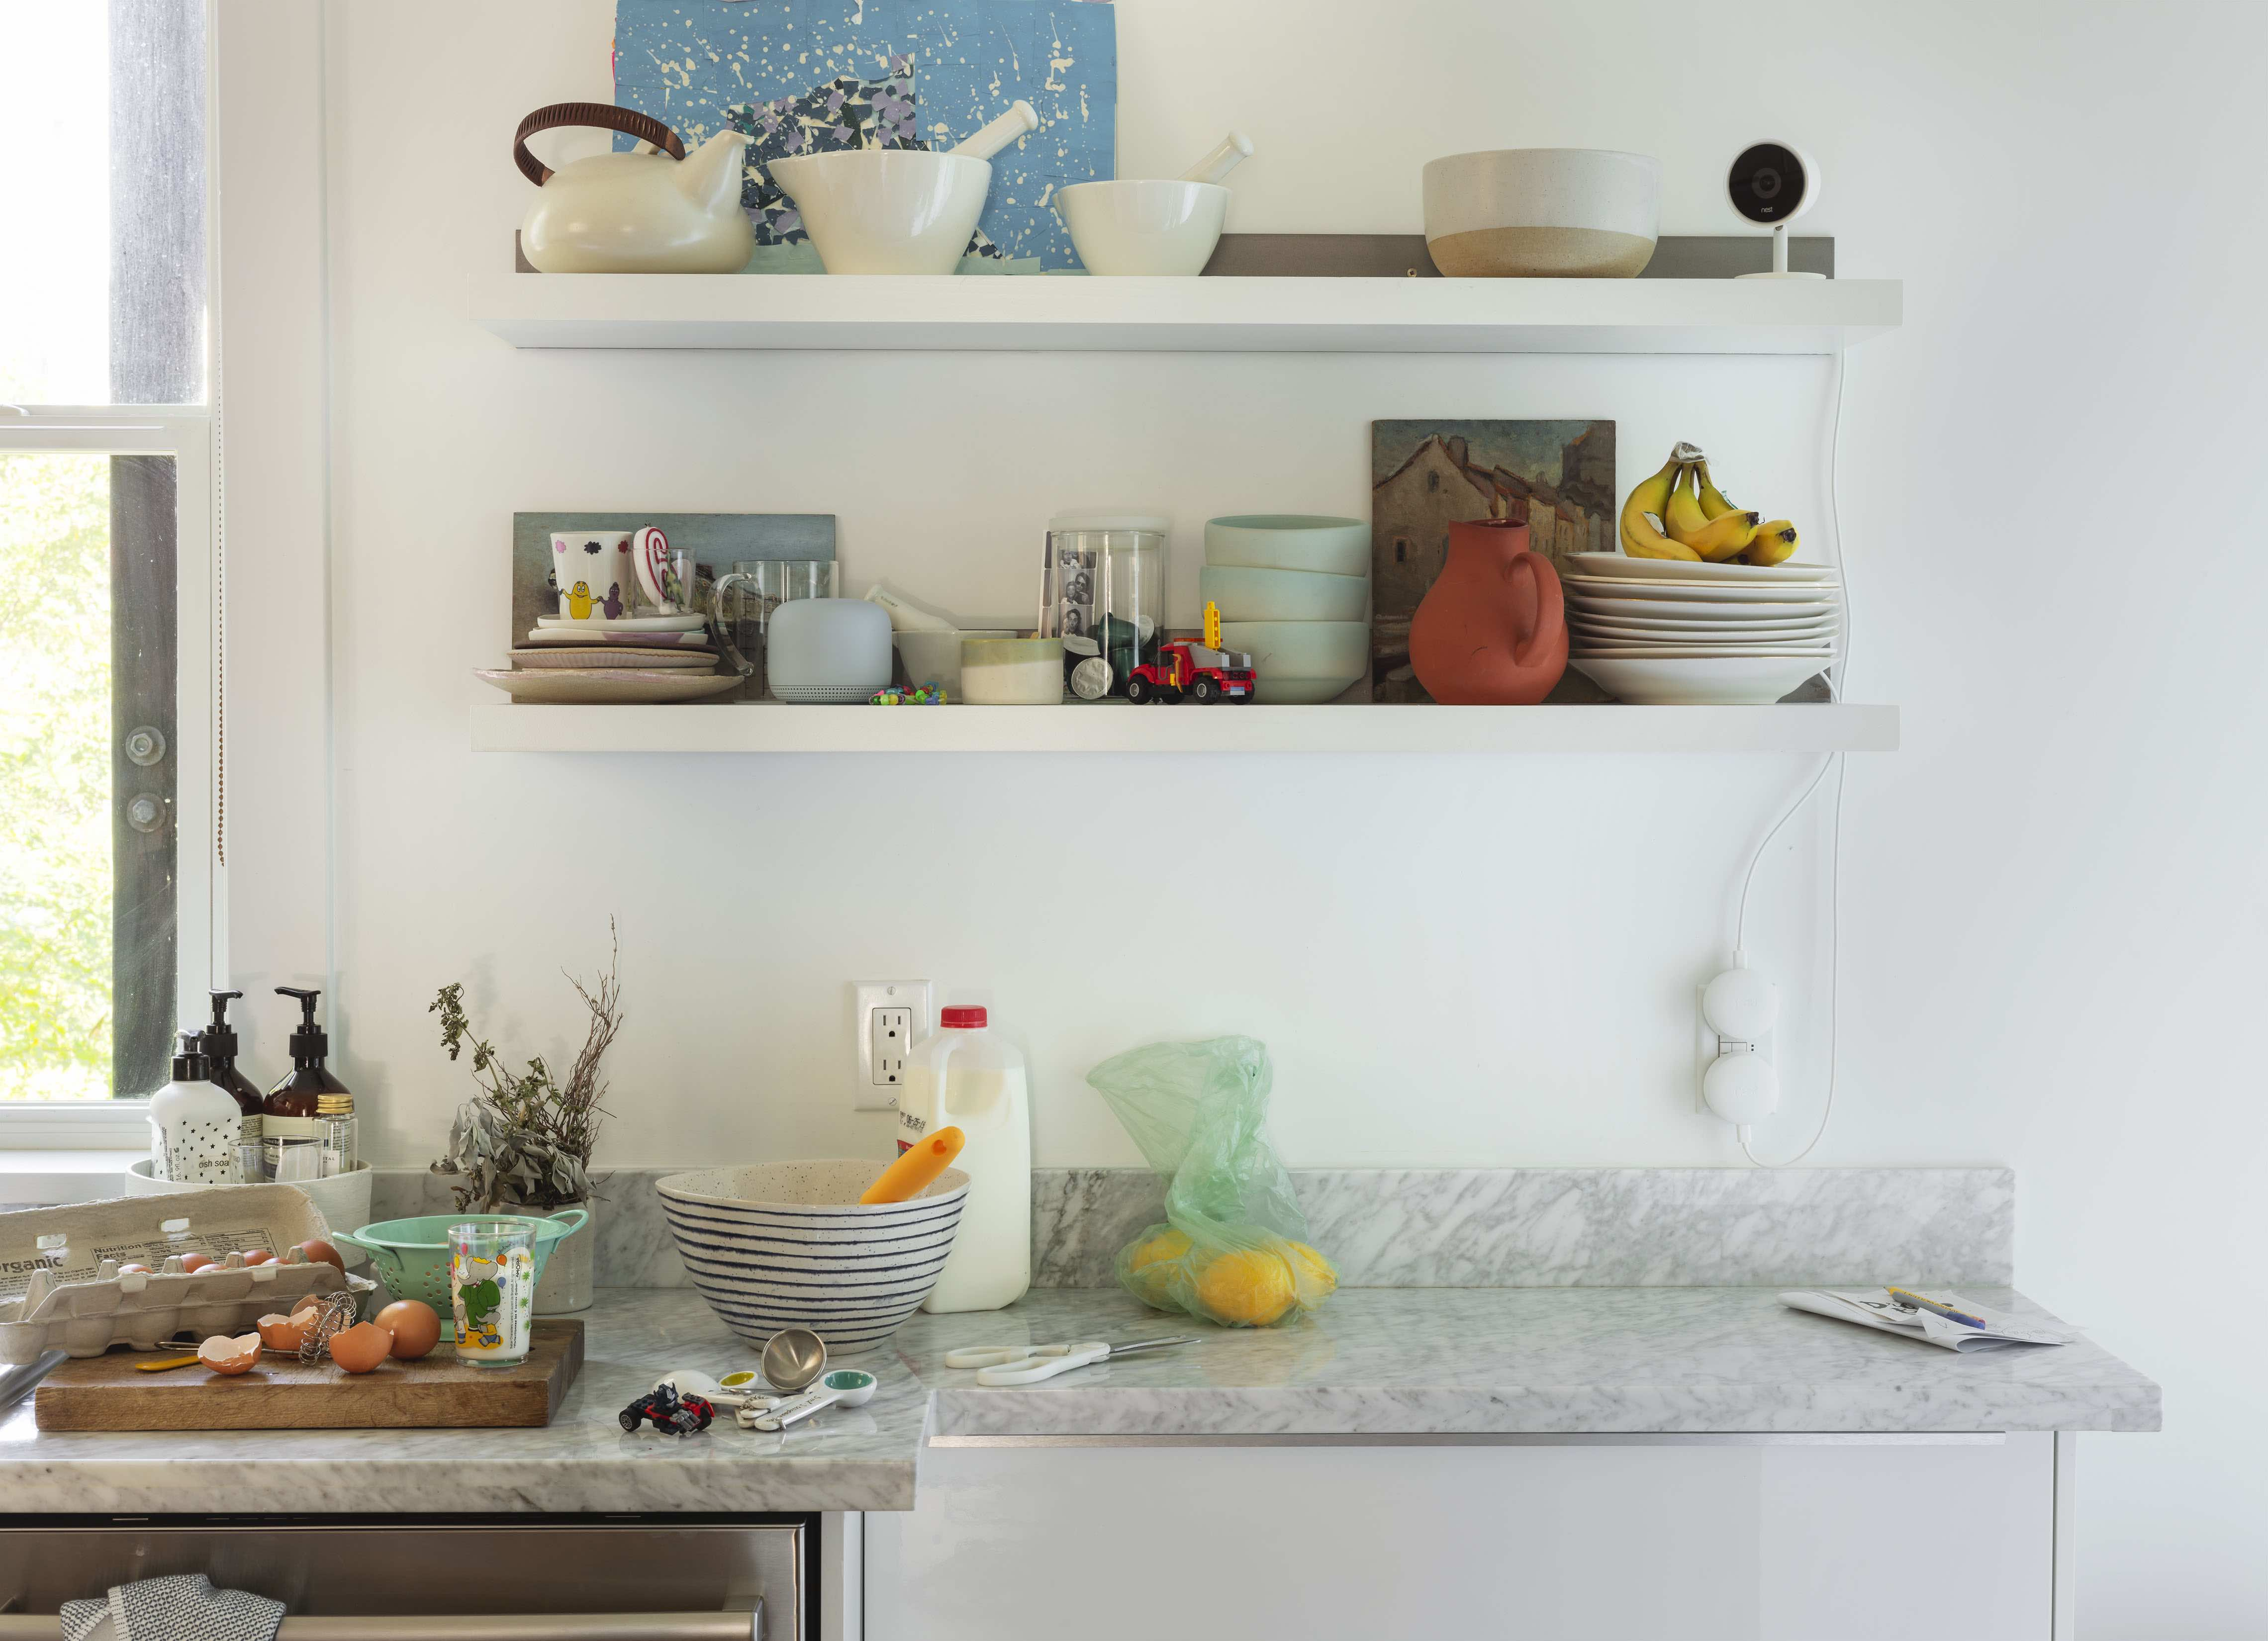 Urban_Flat_Kitchen_Vento_QV2_Medium_Context_0054copy